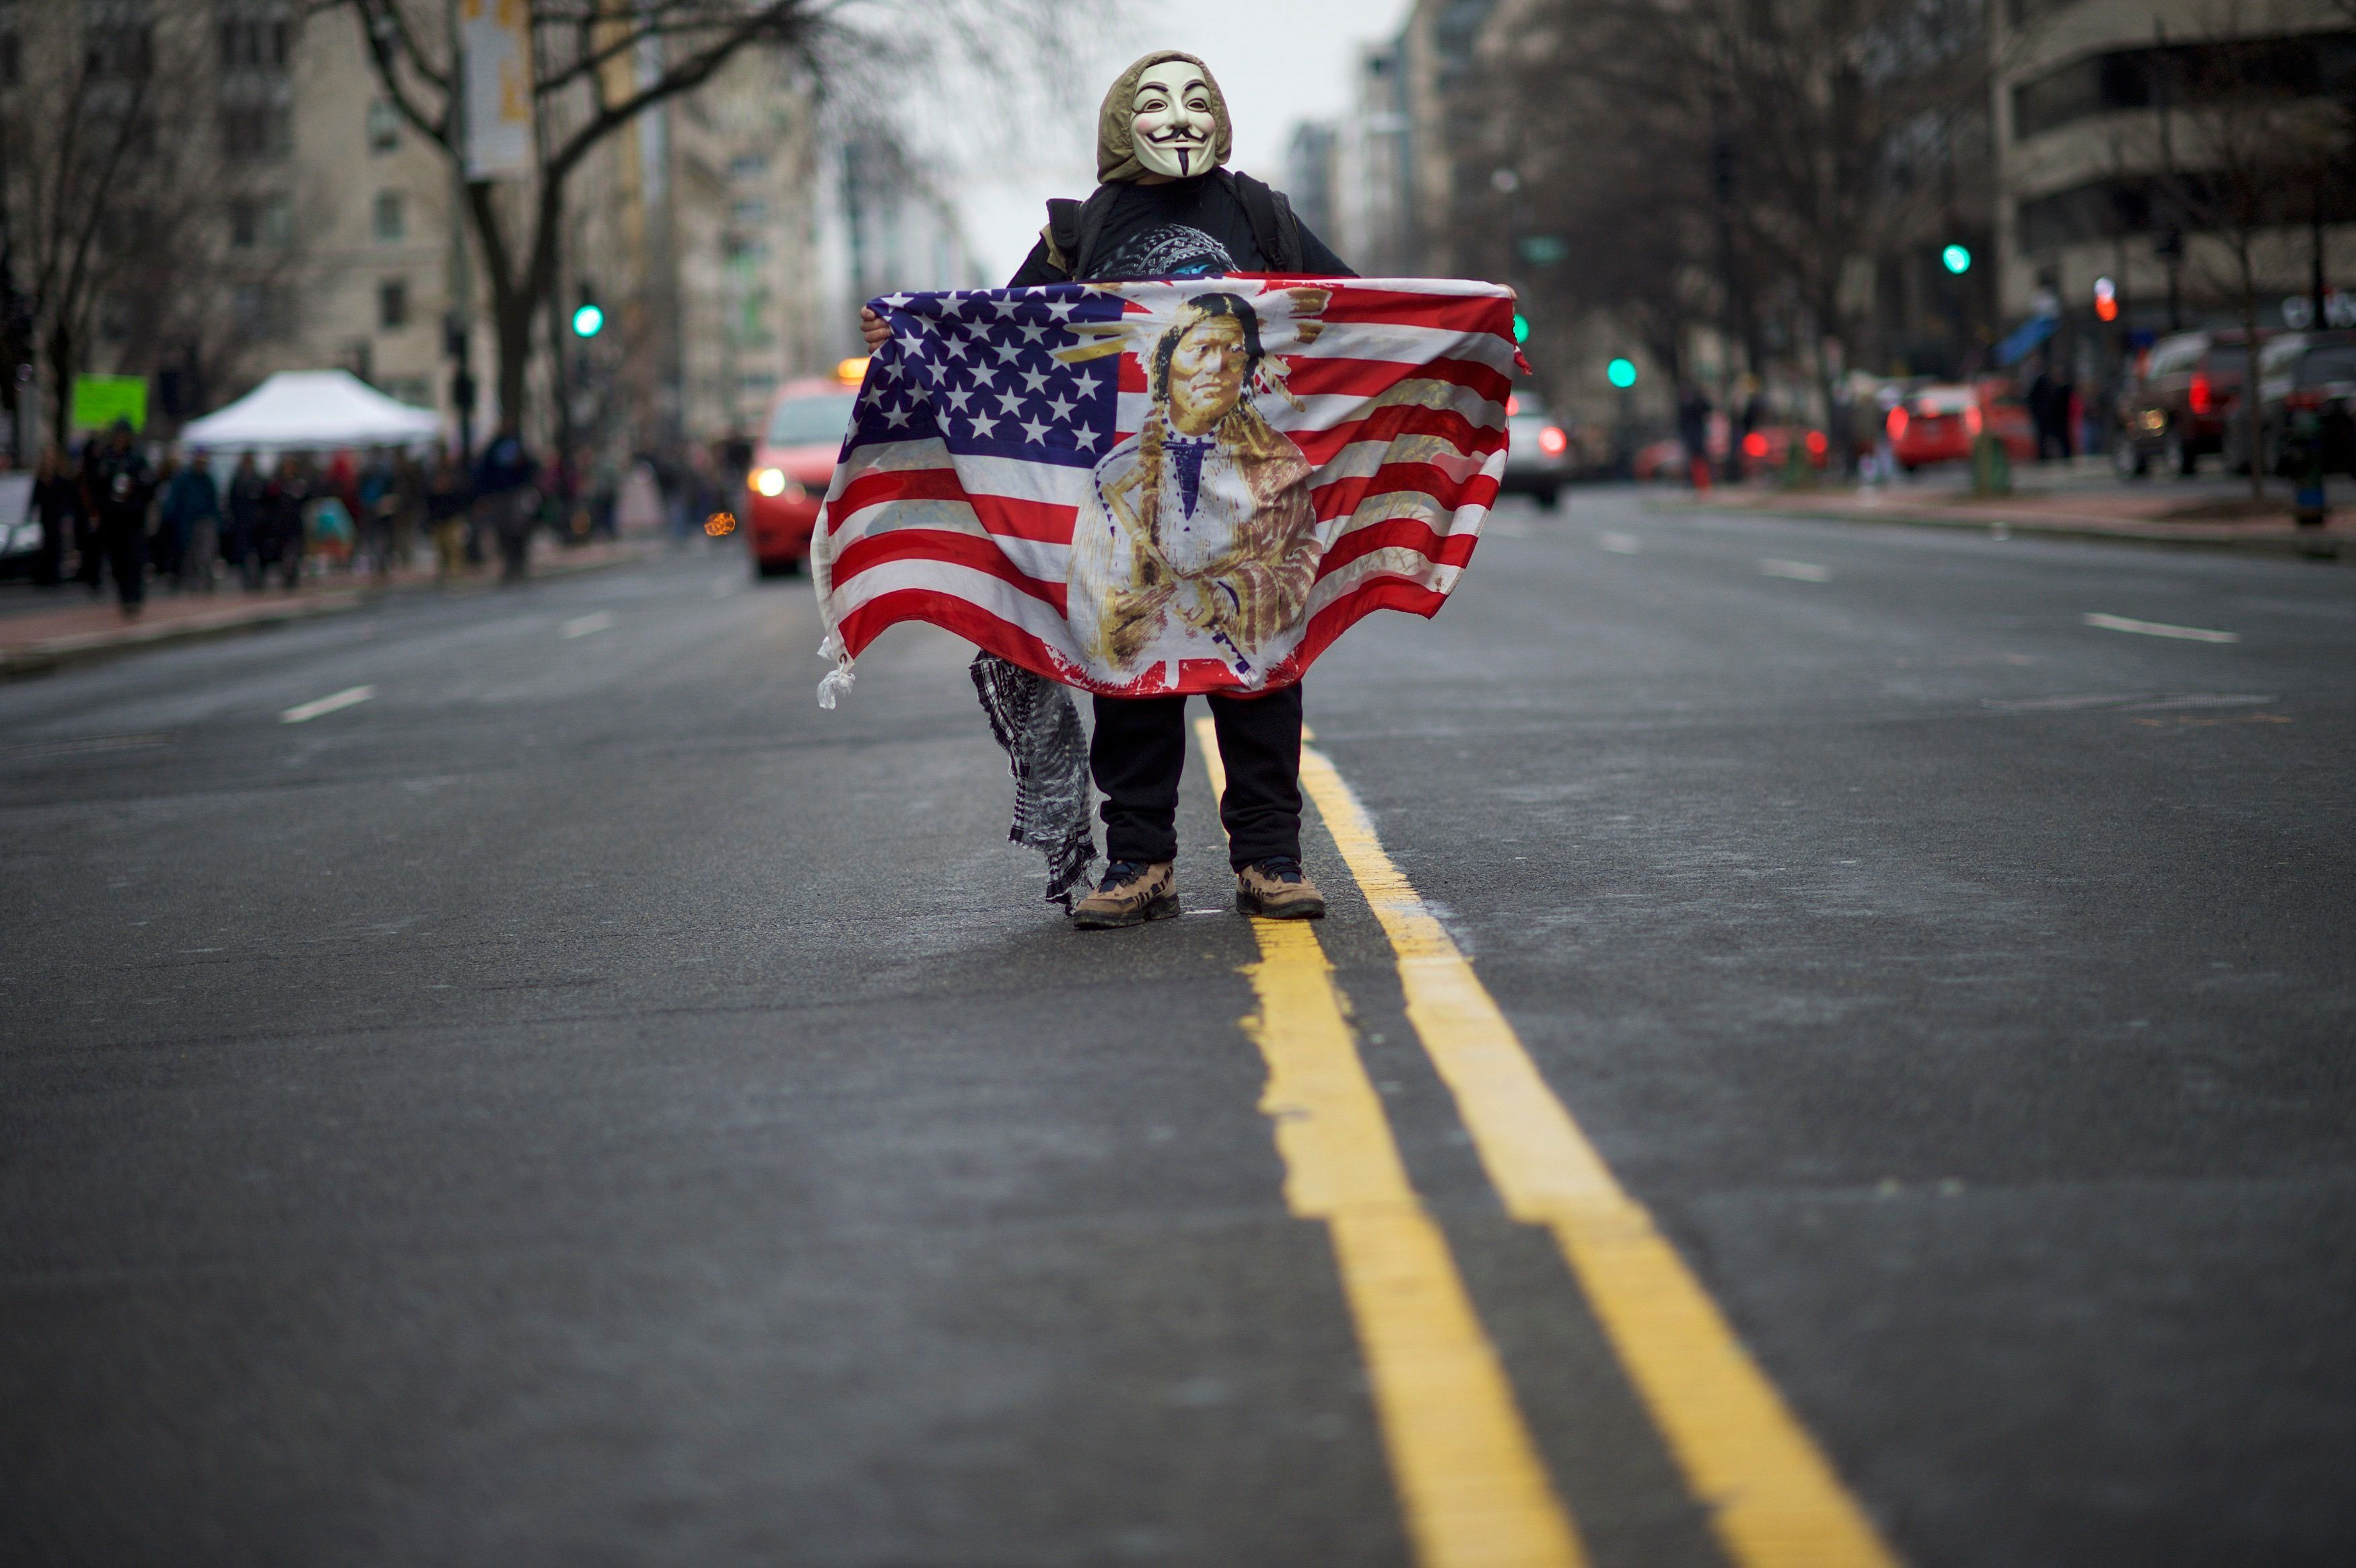 WASHINGTON, DC - JANUARY 20:   A protestor wearing a Guy Fawkes mask demonstrates in the street after the inauguration of Donald Trump as the 45th President of the United States January 20, 2017 in Washington D.C.  Hundreds of thousands of people attended to both celebrate and protest.  (Photo by Mark Makela/Getty Images)